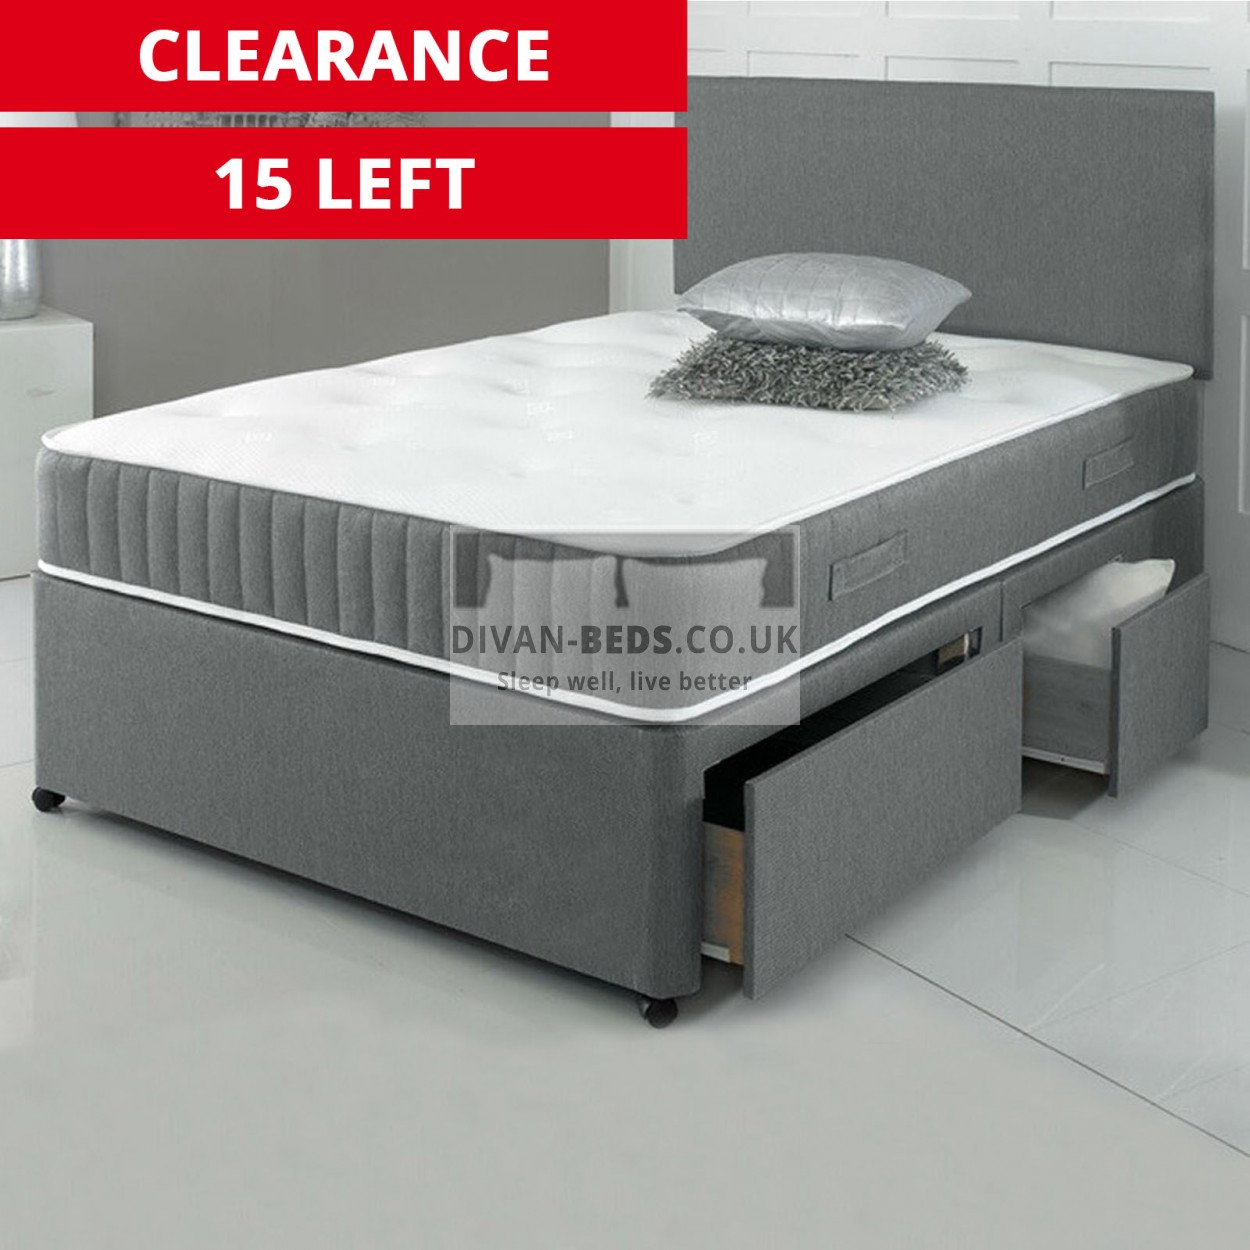 Carter Divan Bed With 3000 Pocket Spring Memory Foam